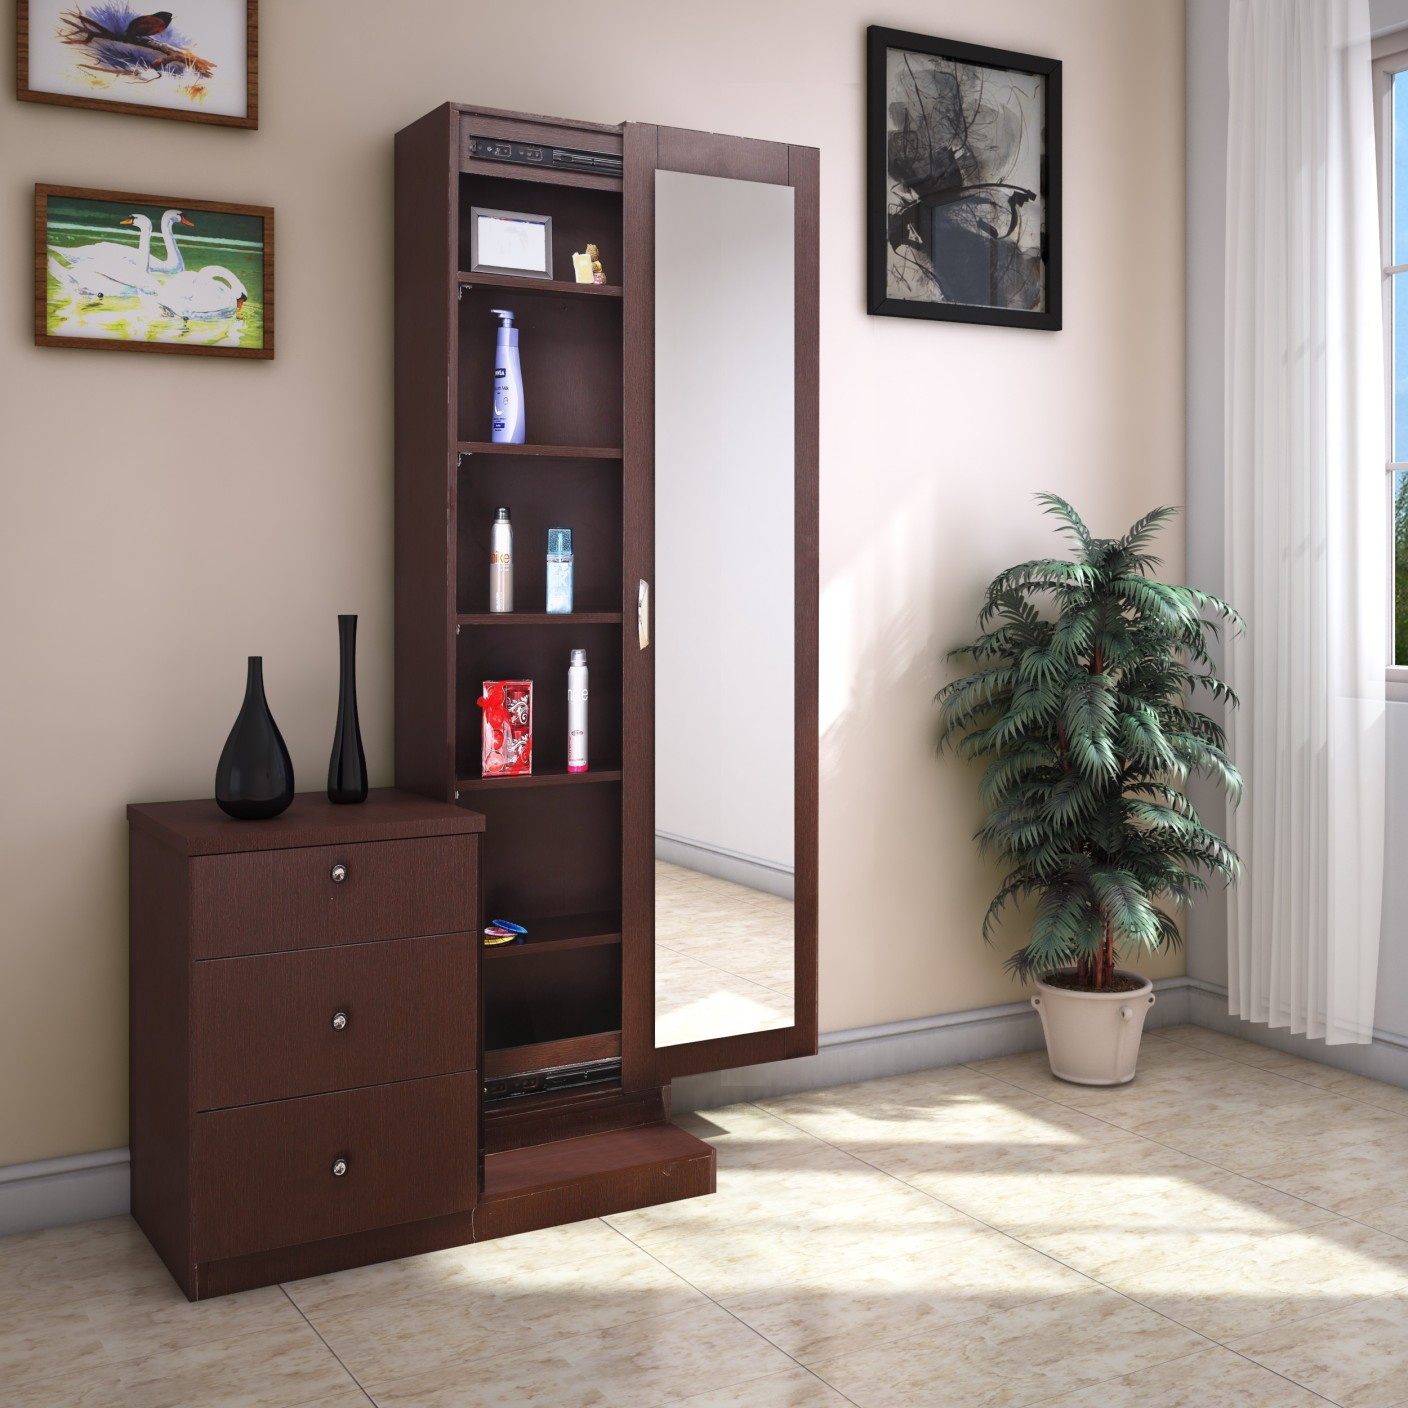 Furnicity Engineered Wood Dressing Table Price In India